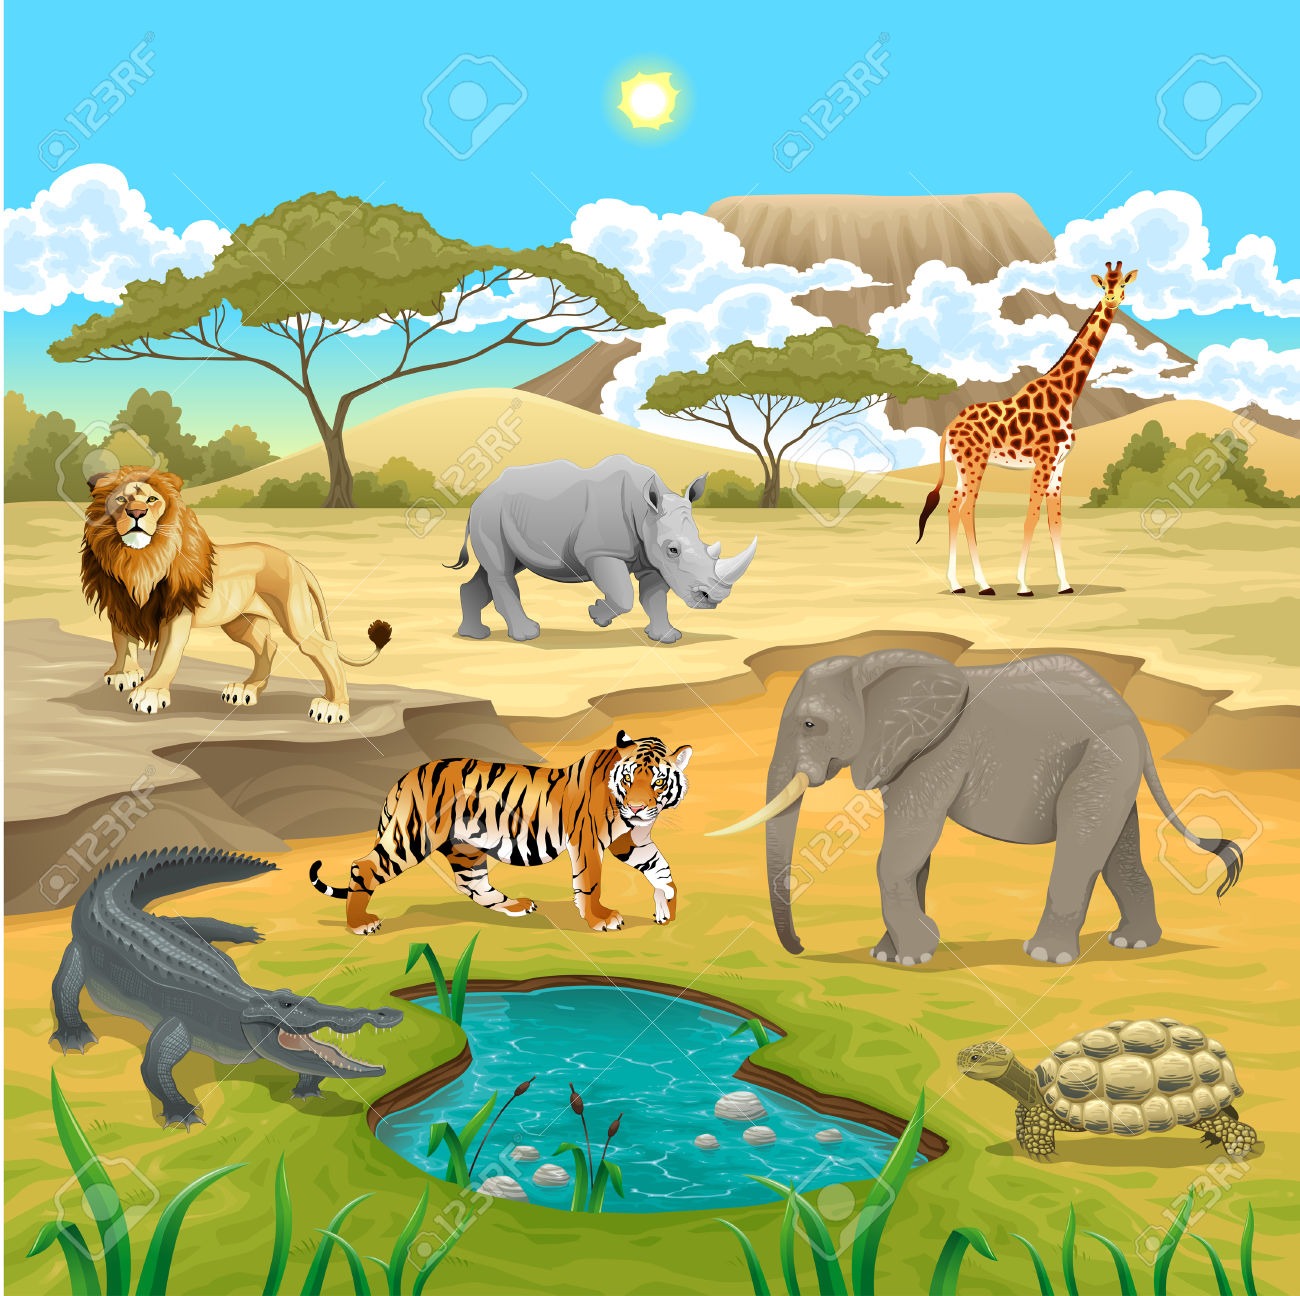 Africa nature clipart.